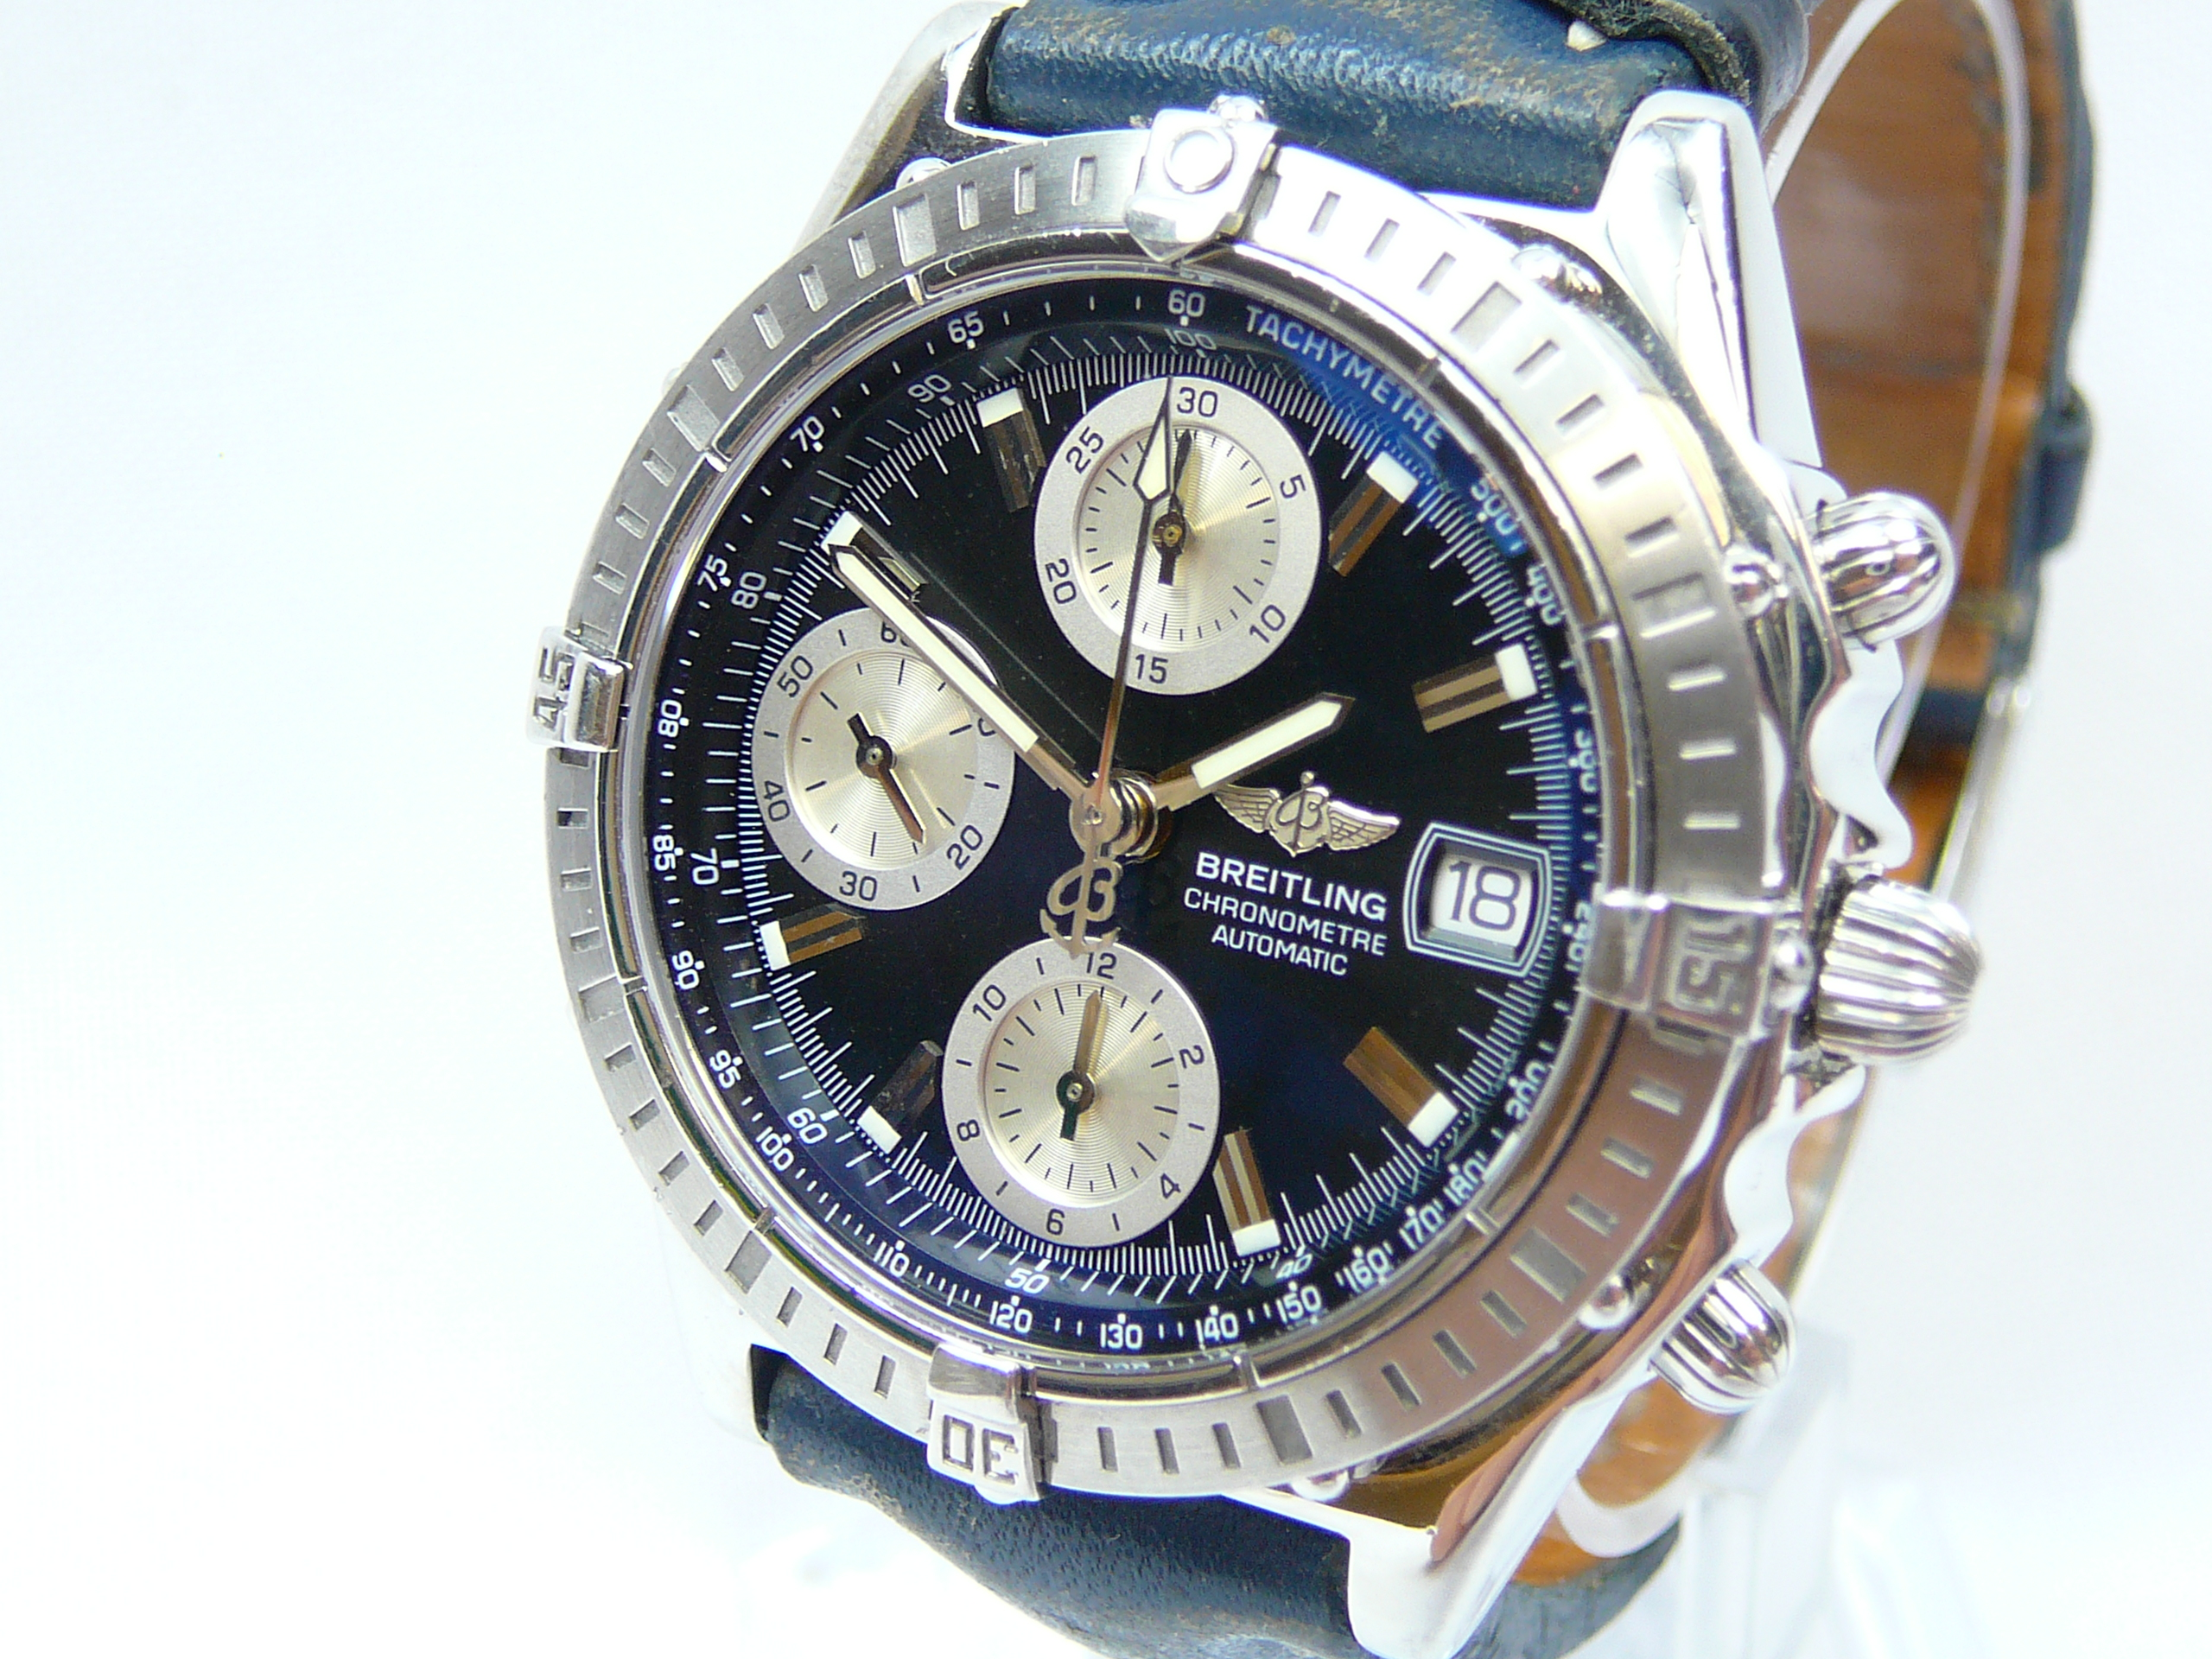 Gents Breitling Wrist Watch - Image 2 of 3